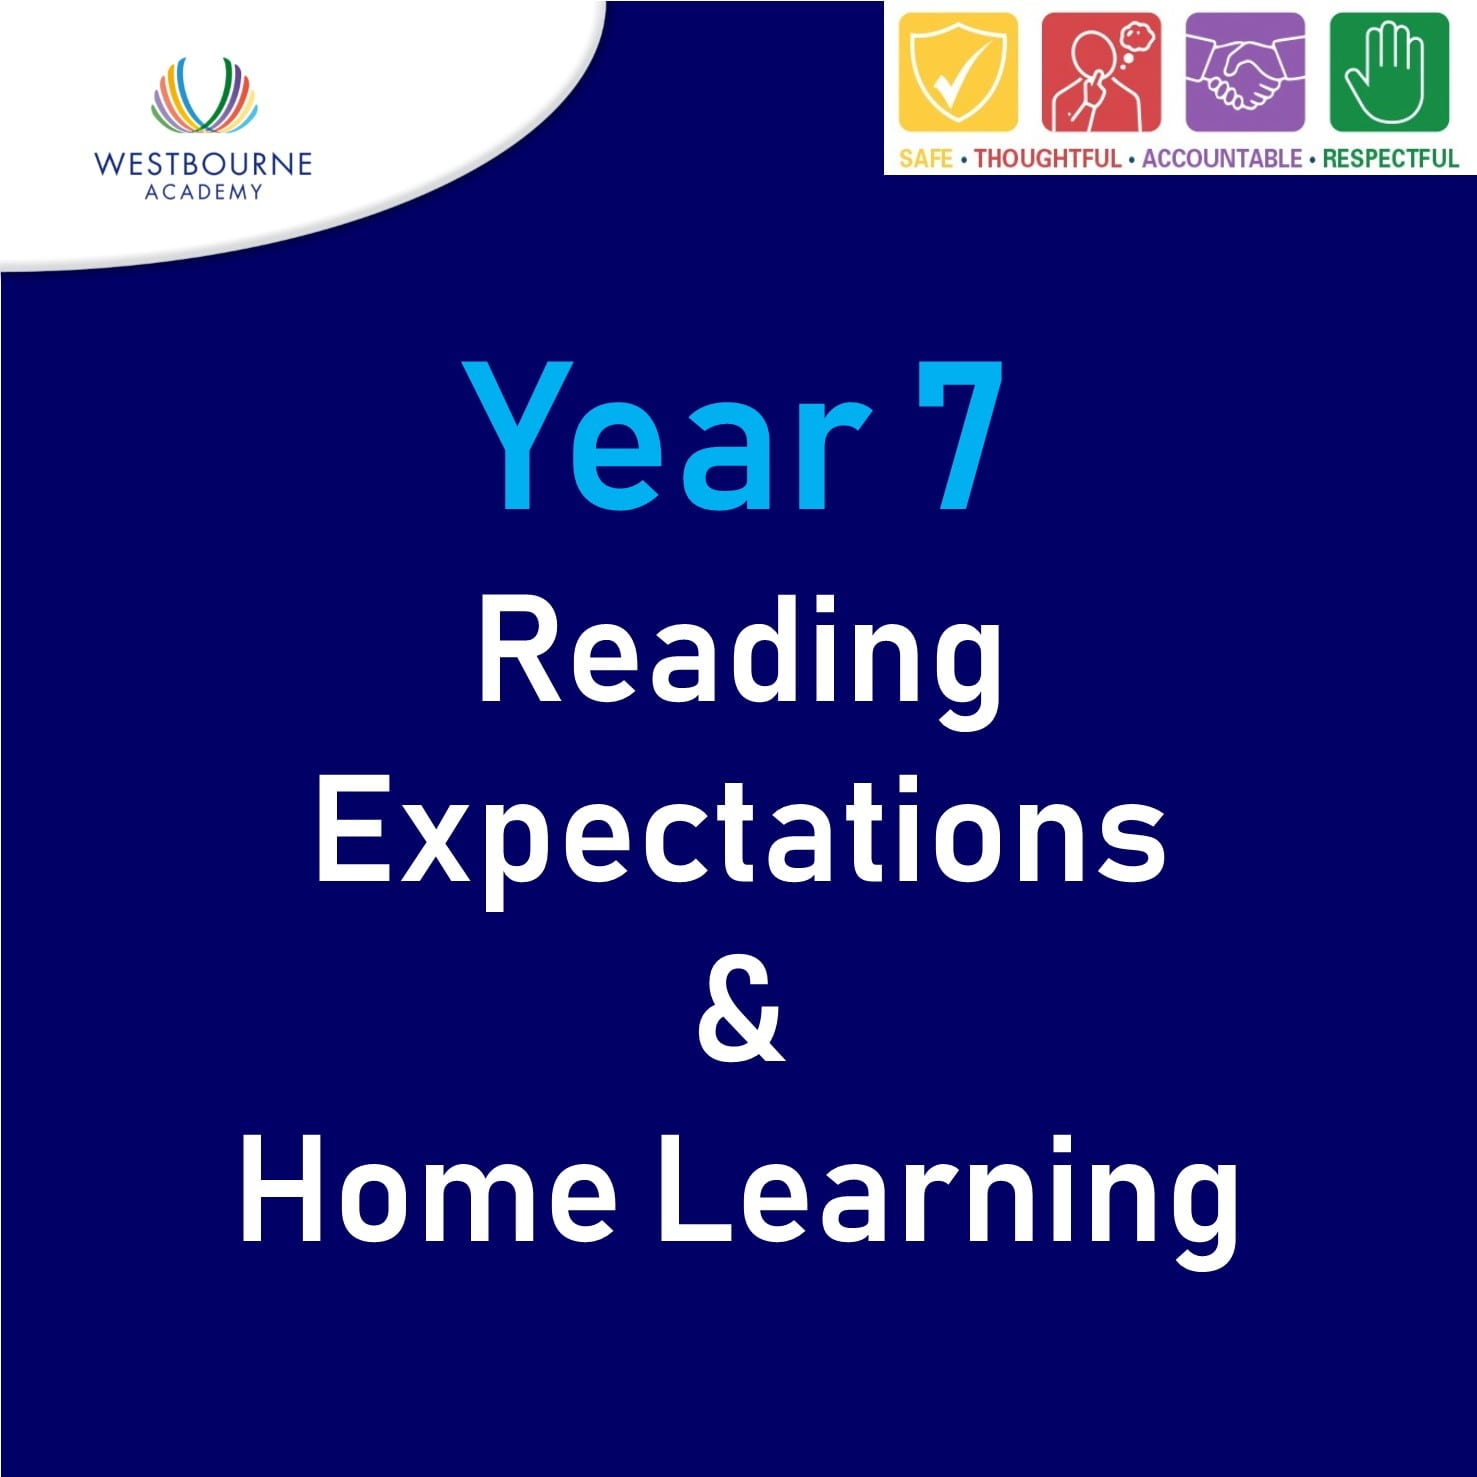 Year 7 Reading Expectations & Home Learning